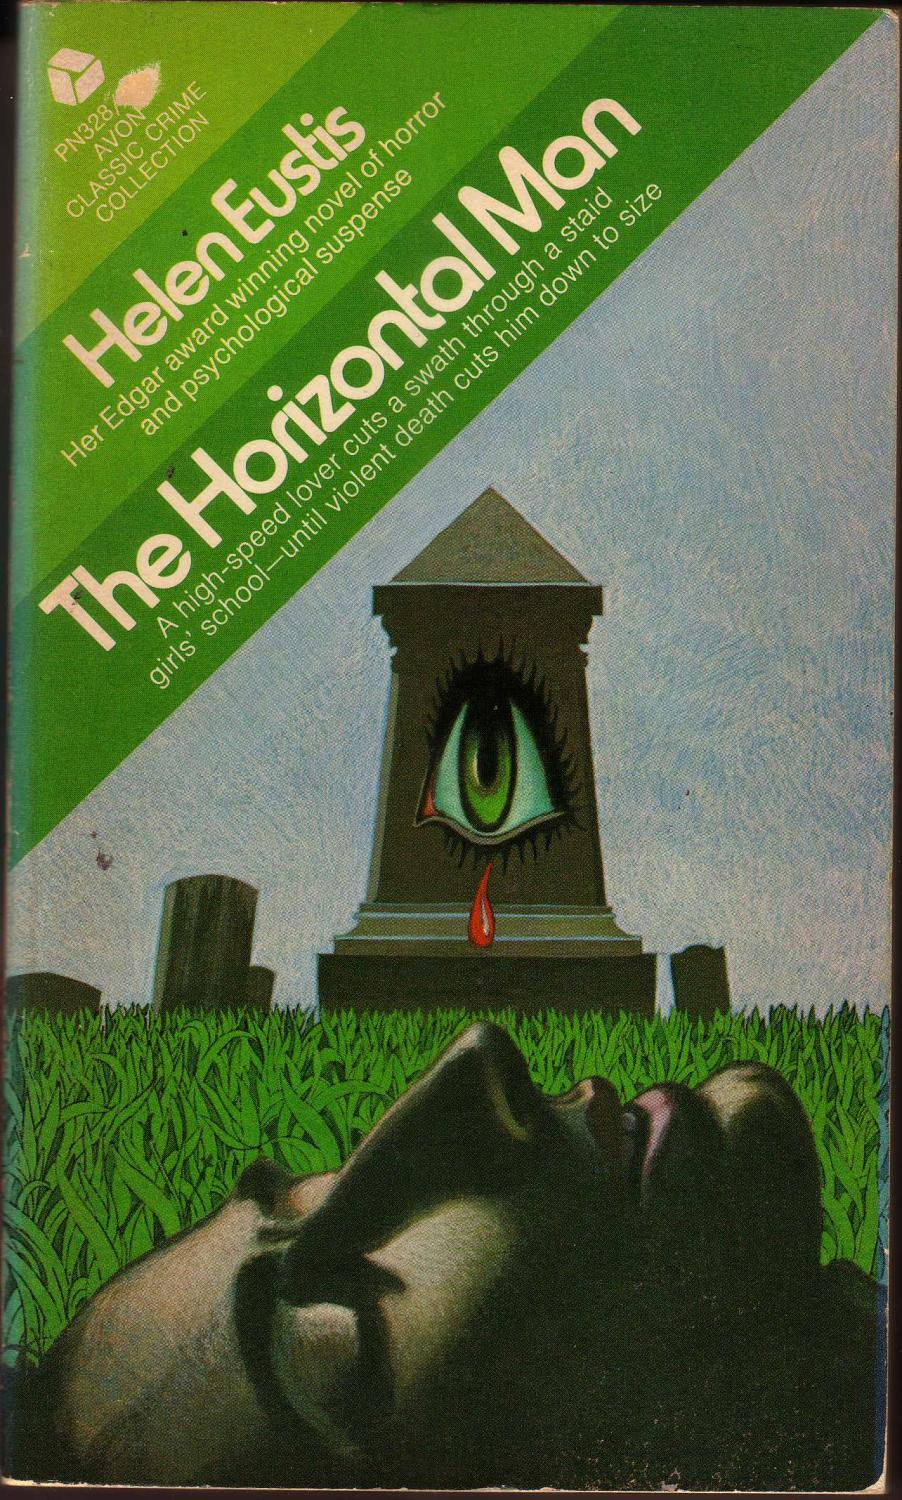 The Horizontal Man cover.